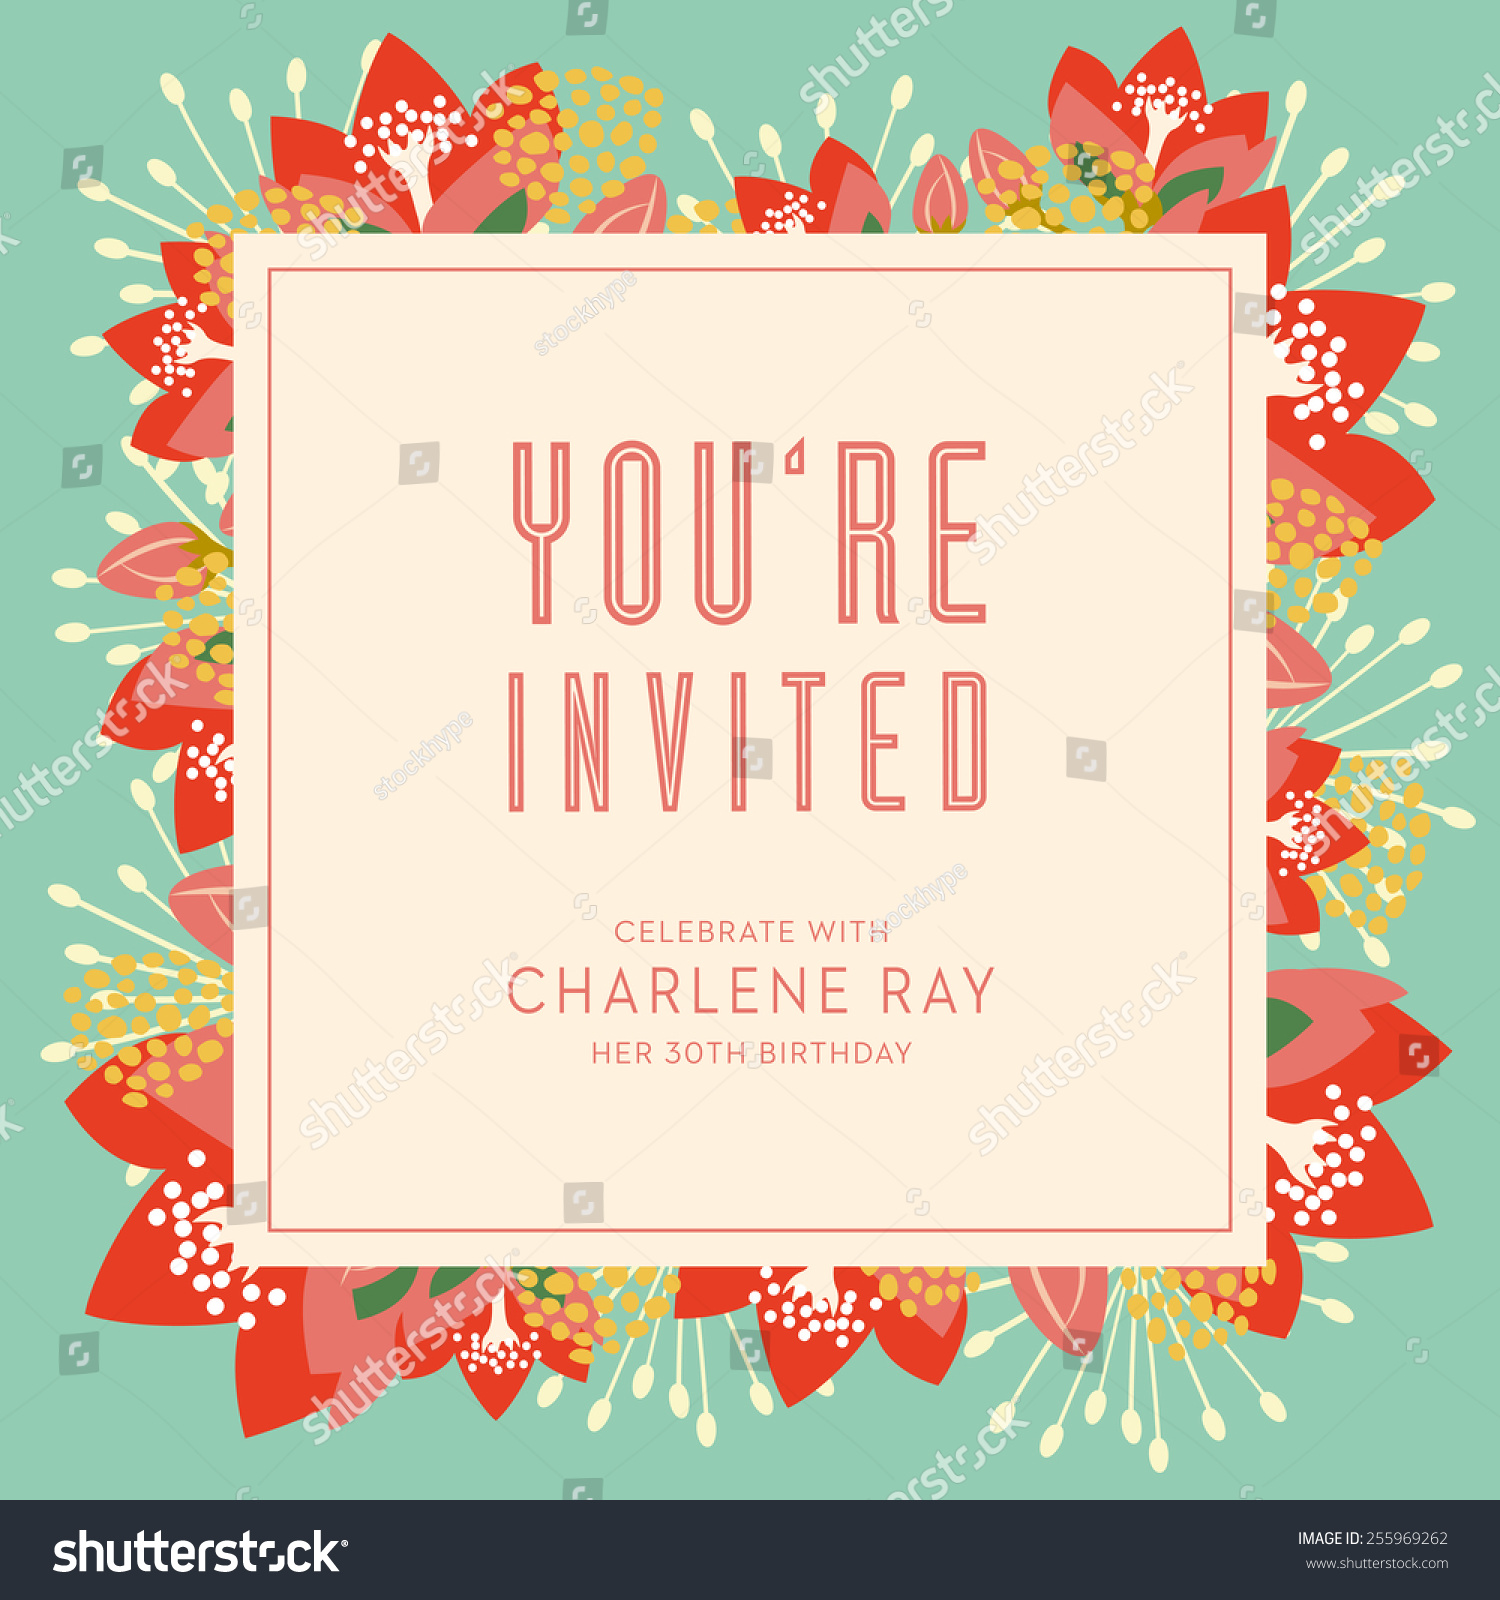 Birthday Invitation Card With Text And Floral Background It Can Be Used For Your